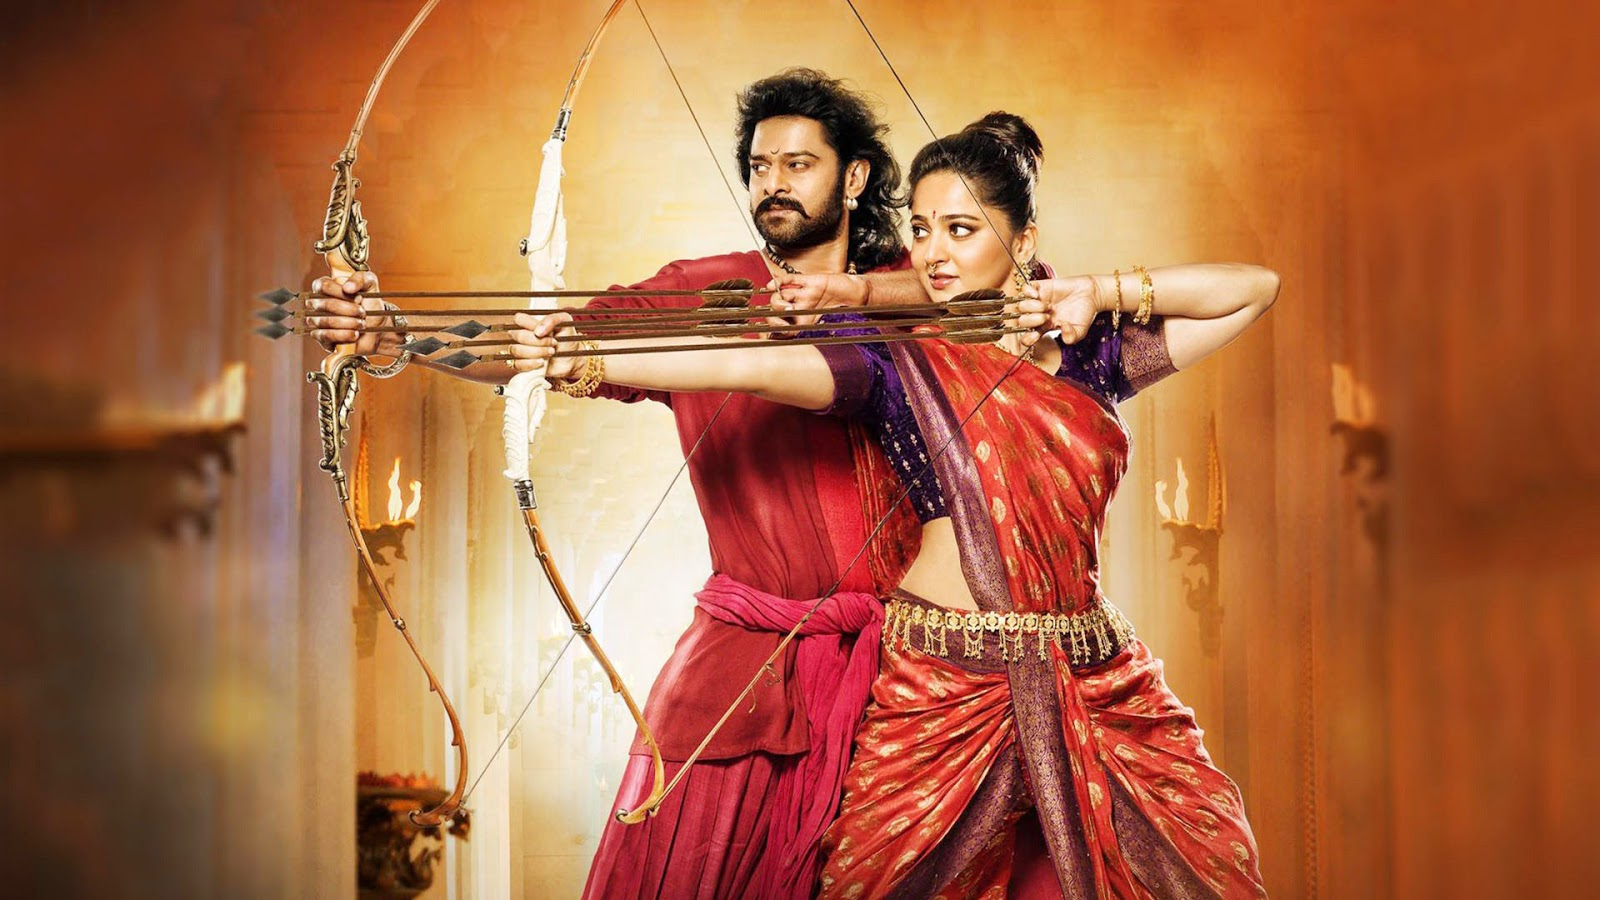 Hd wallpaper bahubali 2 - Baahubali 2 Royal Look